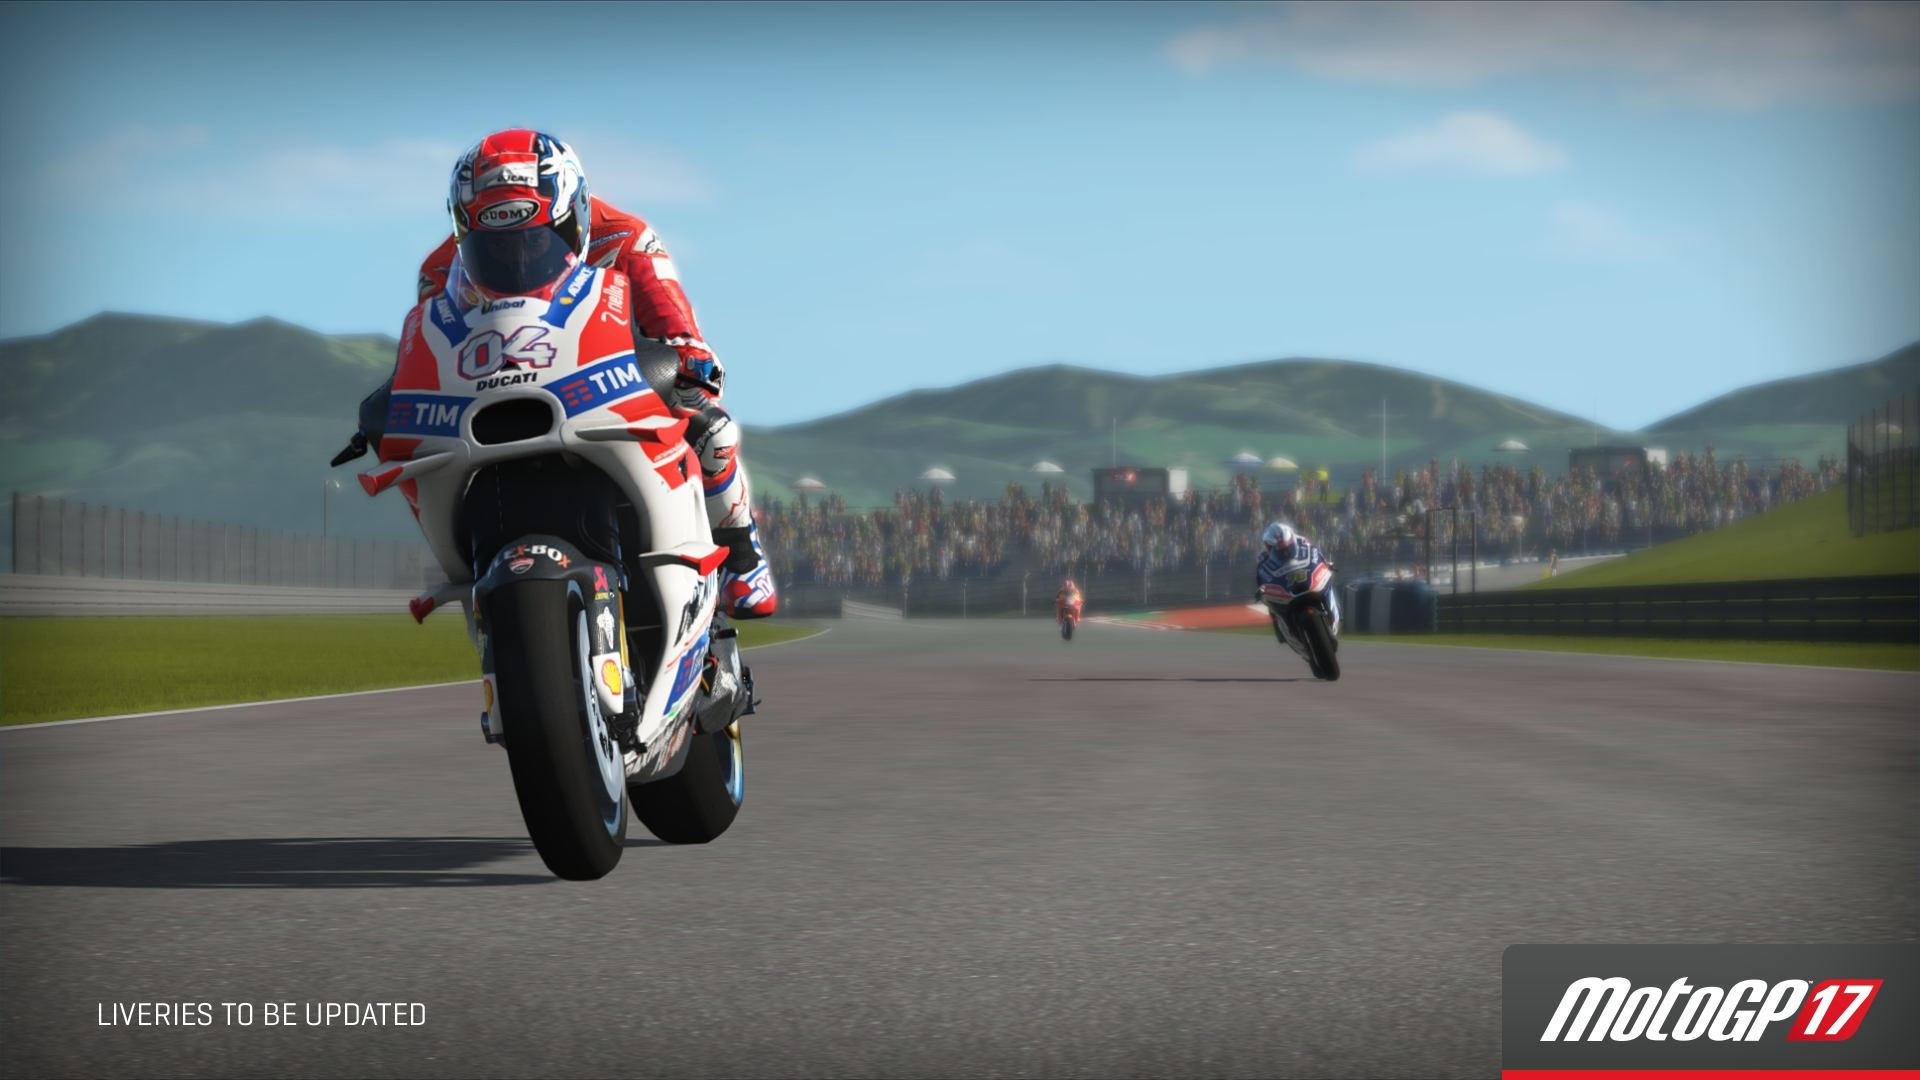 Motogp Ps4 2017 | MotoGP 2017 Info, Video, Points Table